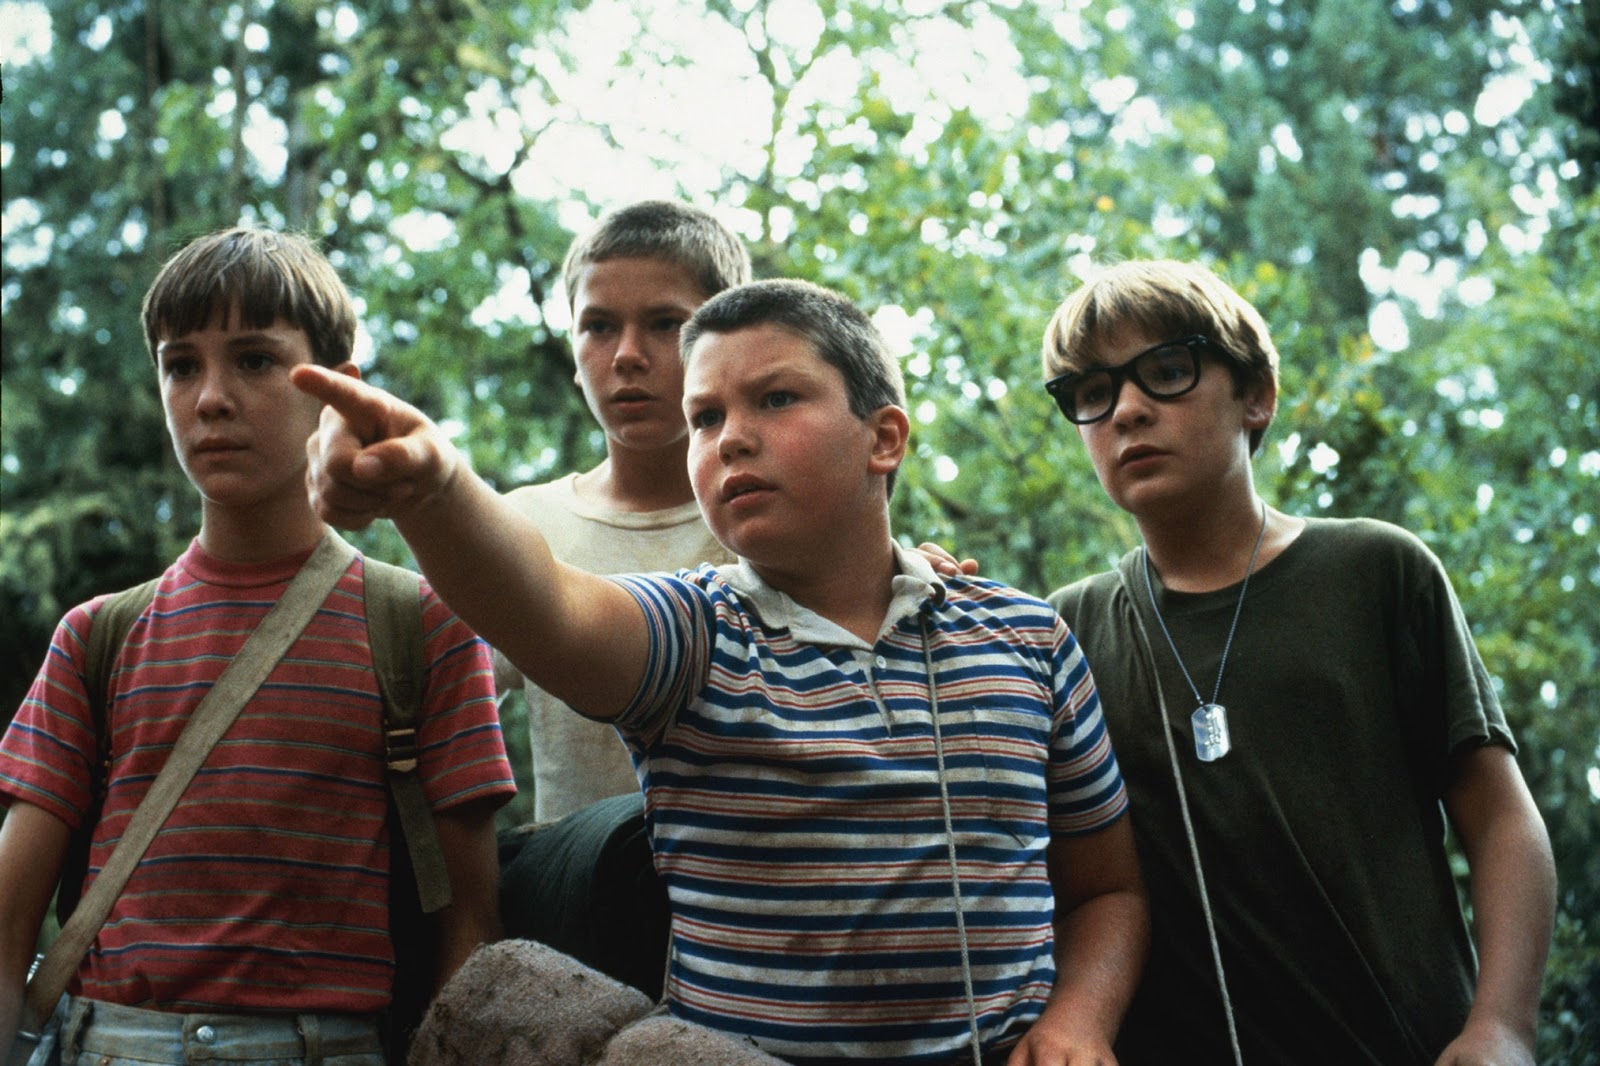 stand me and body Stand by me (based on stephen king's novella) revolves around four small-town 12-year-old boys who set out on a trek to find a dead body they overcome oncoming trains, a disgusting bout with leeches, and the rival advances of a competing gang to collect the prize of locating the body.